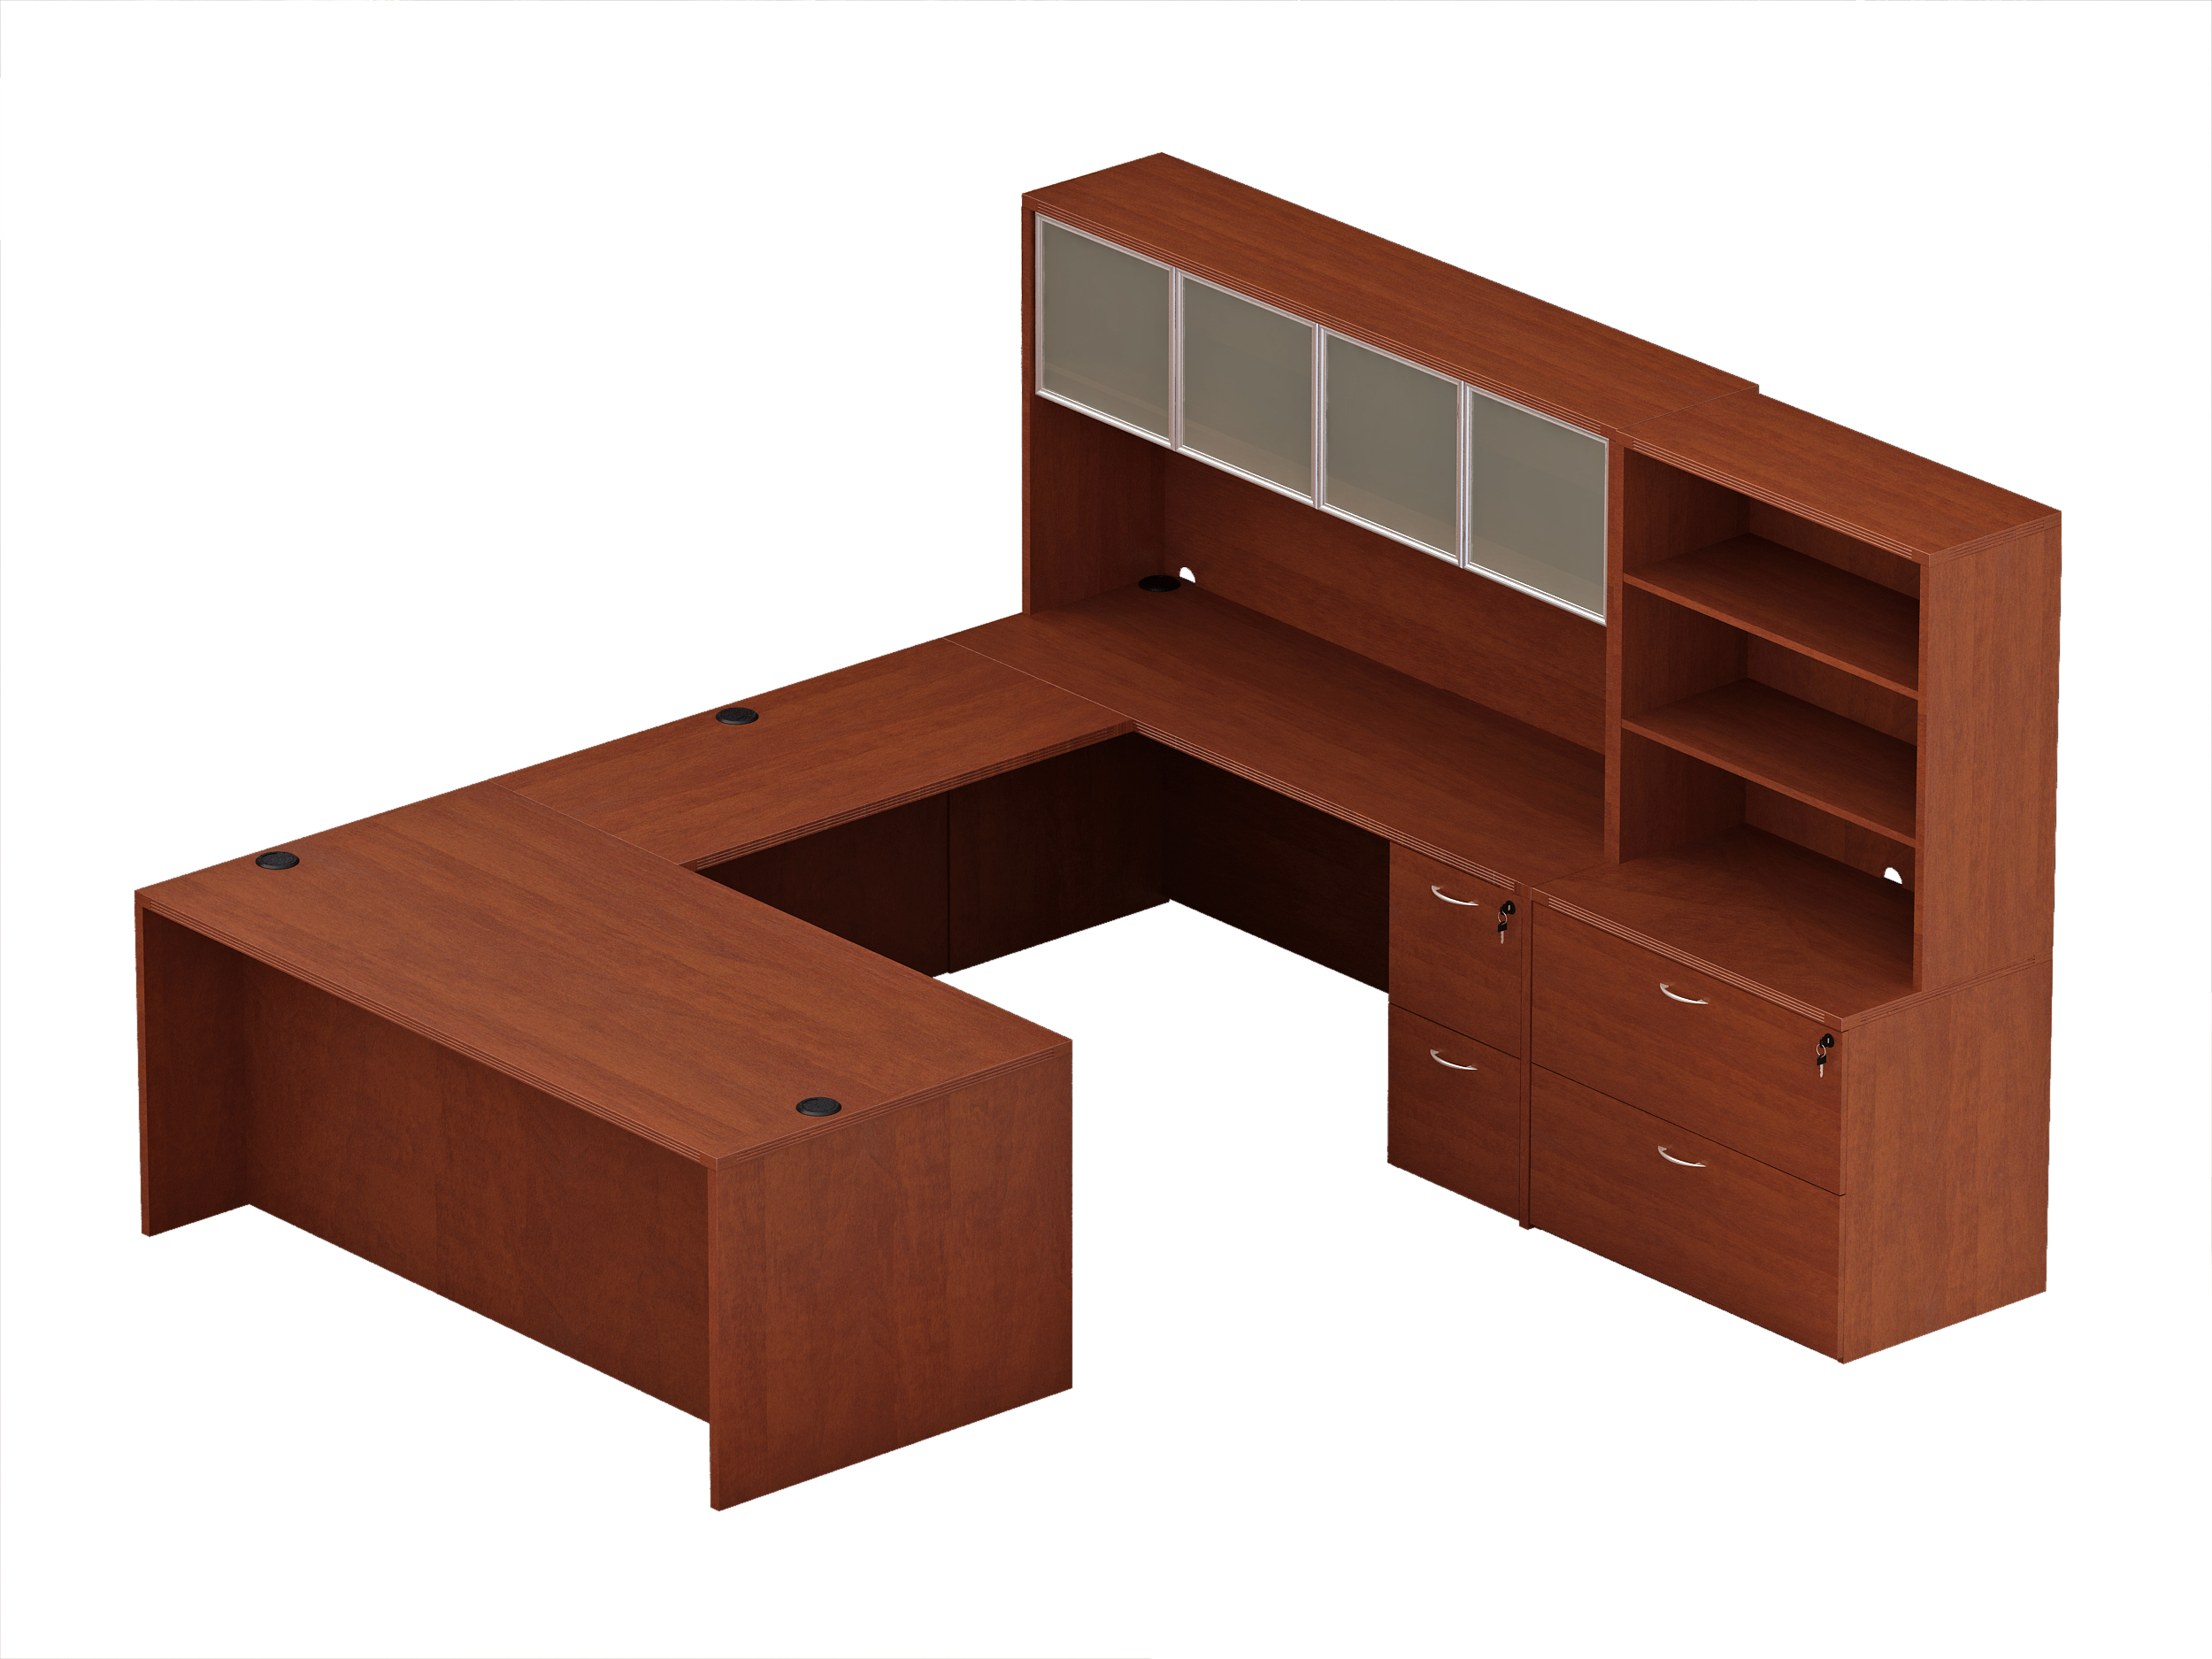 GCNAP Corporate Office Furniture   Office Direct QLD